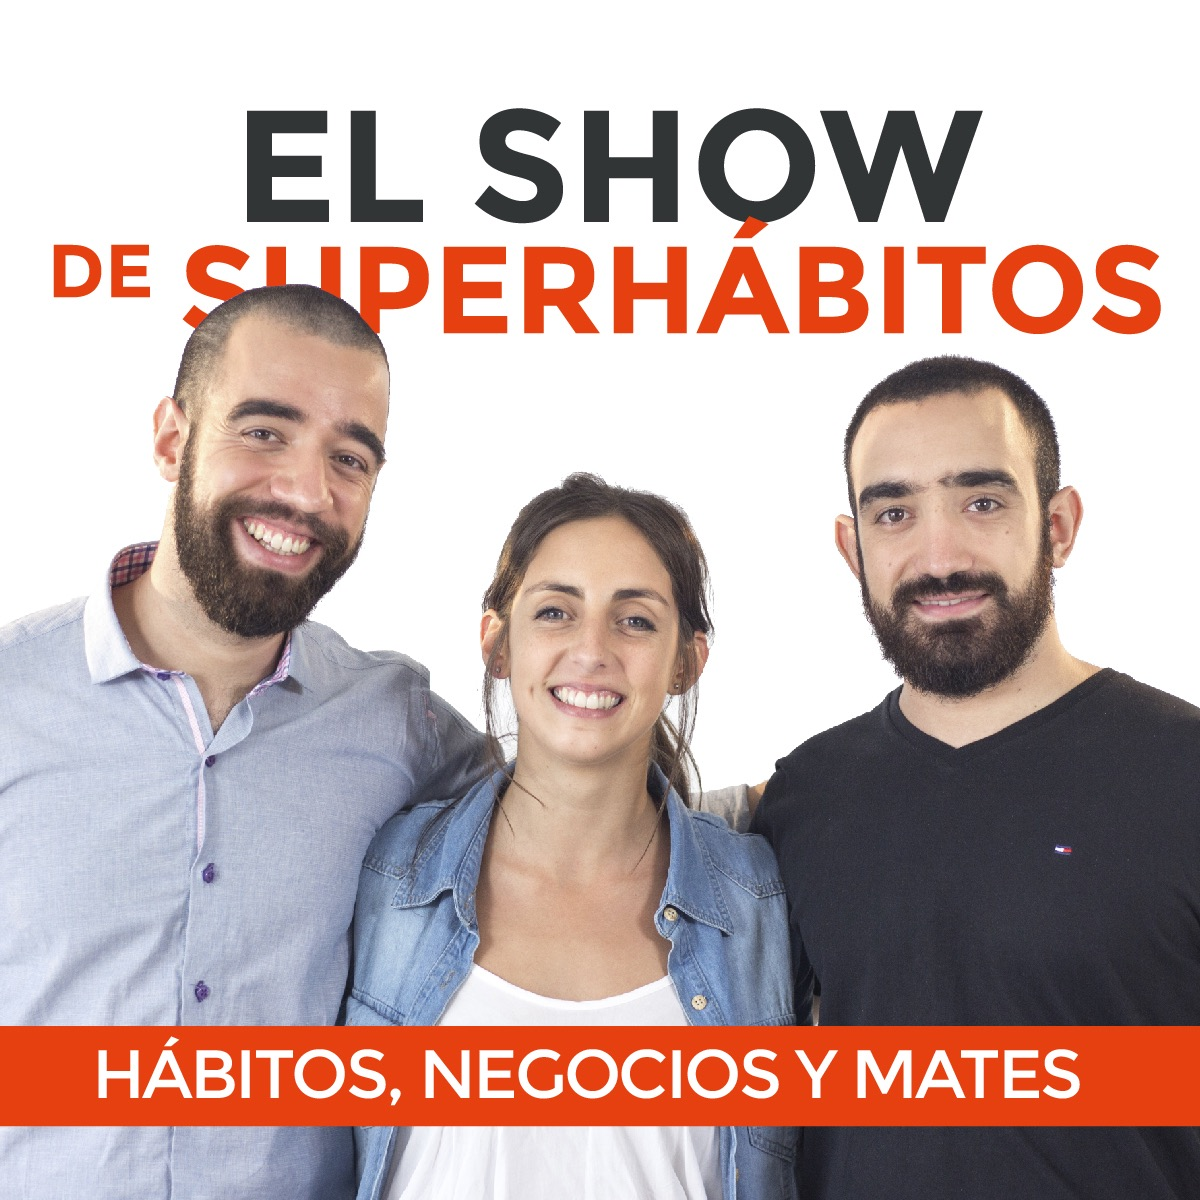 El Show de Superhábitos